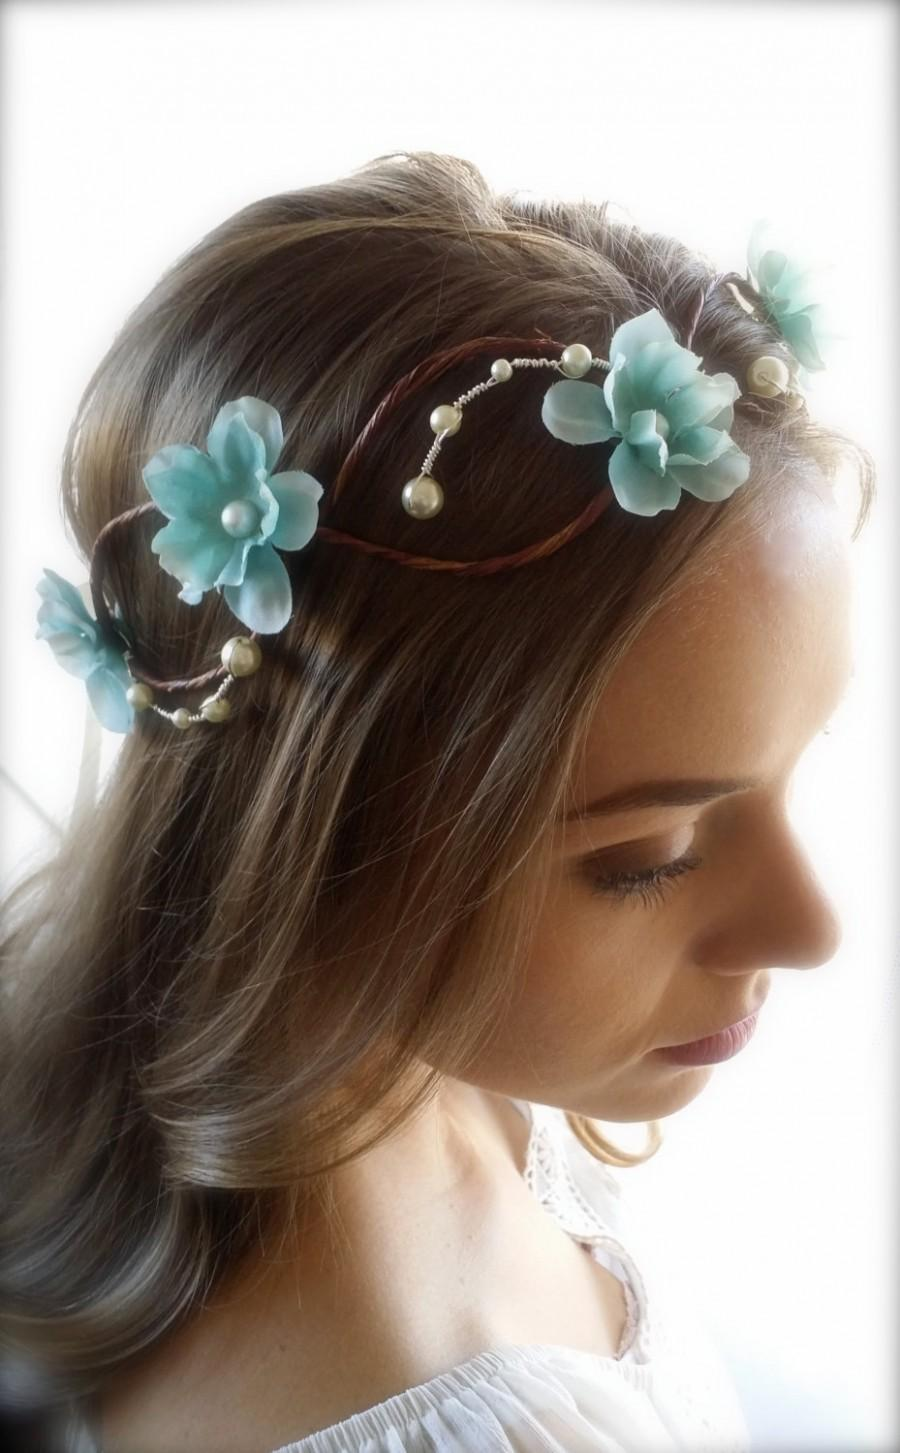 Flower hair wreath circlet bridal hair halo light blue flower crown flower hair wreath circlet bridal hair halo light blue flower crown ivory pearls woodland wedding boho chic bride hair circlet izmirmasajfo